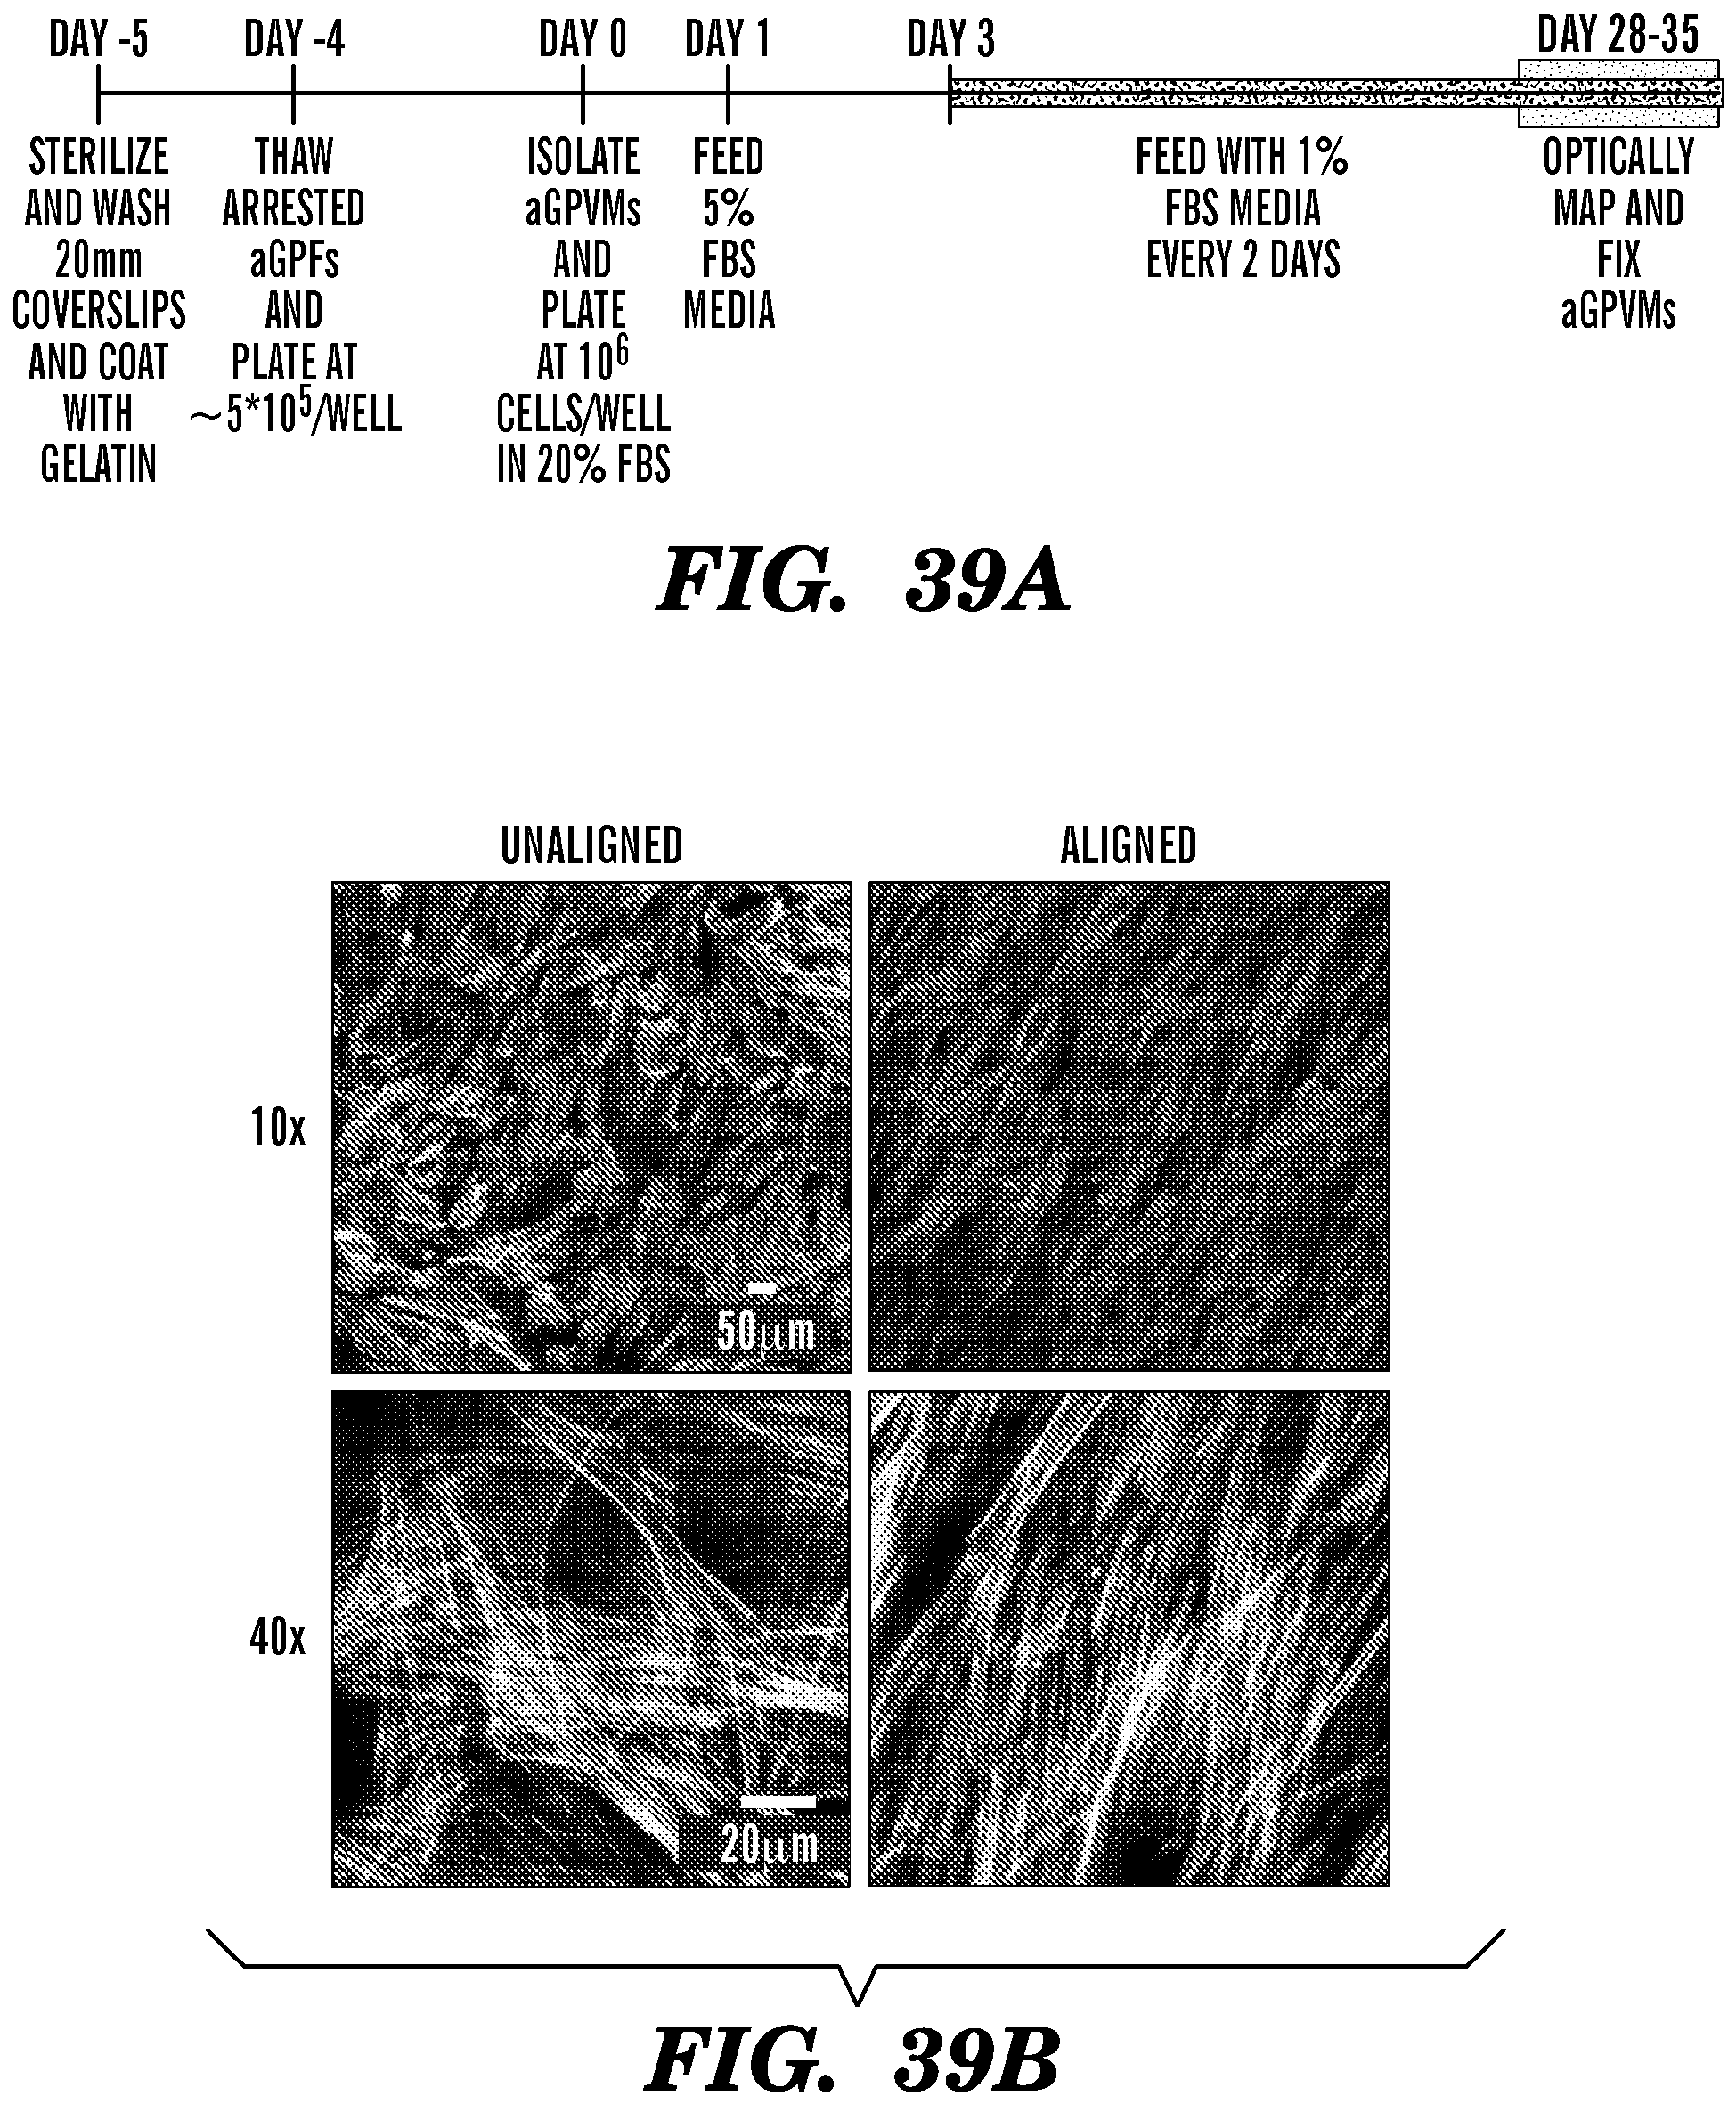 SYSTEMS AND METHOD FOR ENGINEERING MUSCLE TISSUE - Patent